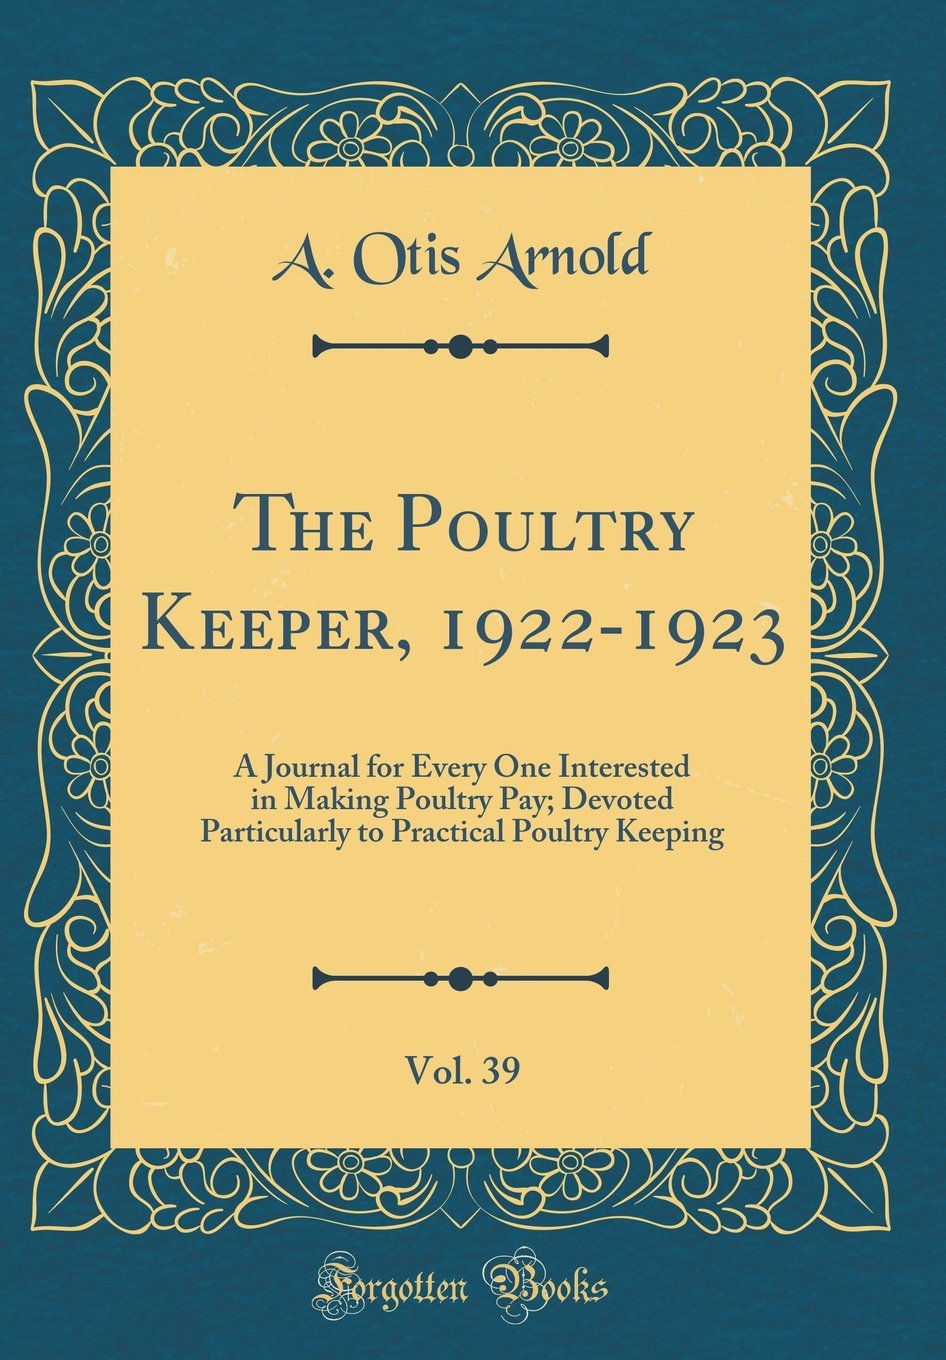 Download The Poultry Keeper, 1922-1923, Vol. 39: A Journal for Every One Interested in Making Poultry Pay; Devoted Particularly to Practical Poultry Keeping (Classic Reprint) ebook